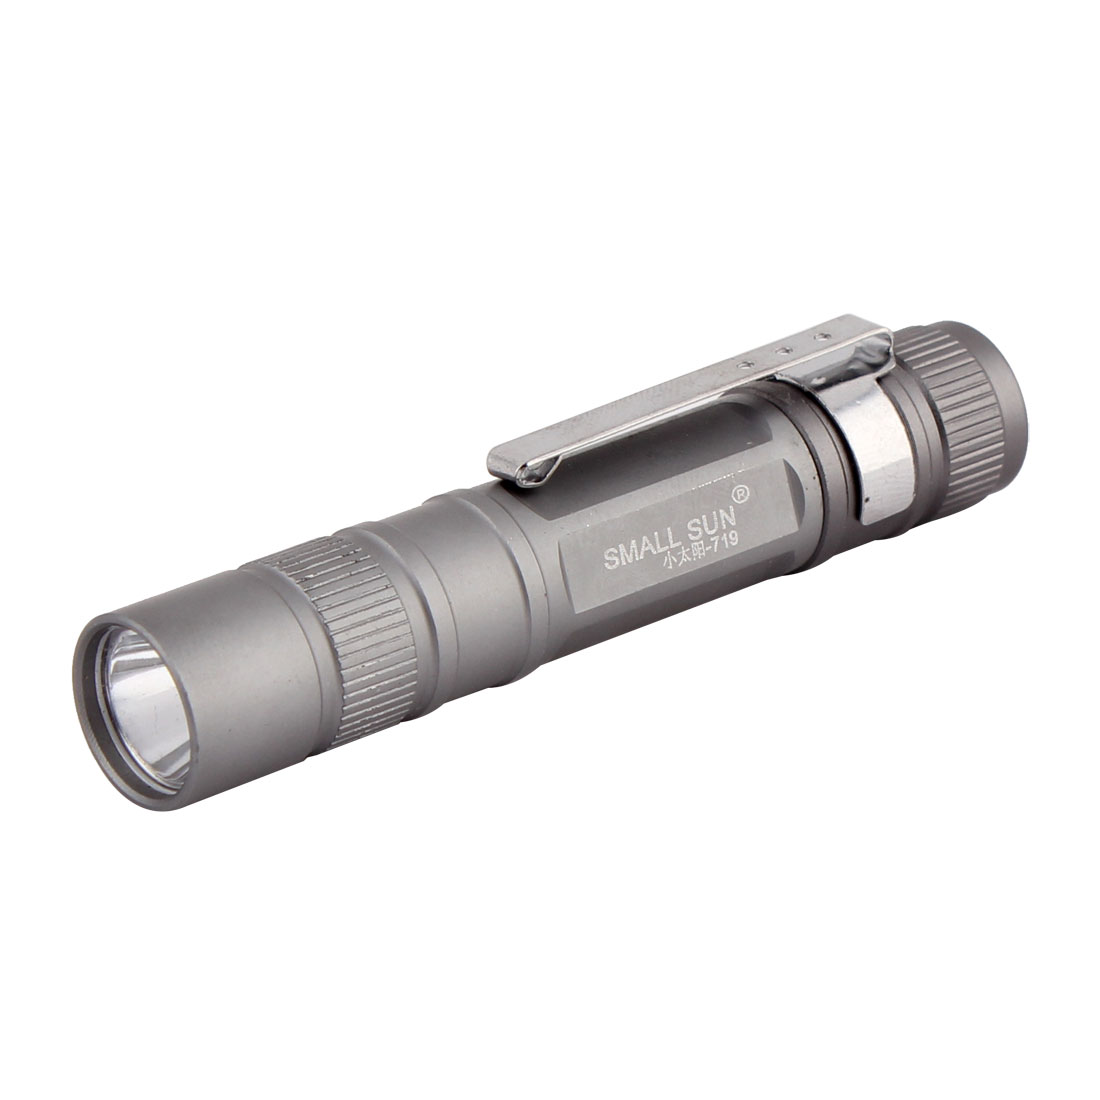 Aluminum Shell Water Resistant Light Clip Mini Flashlight Torch Gray Silver Tone